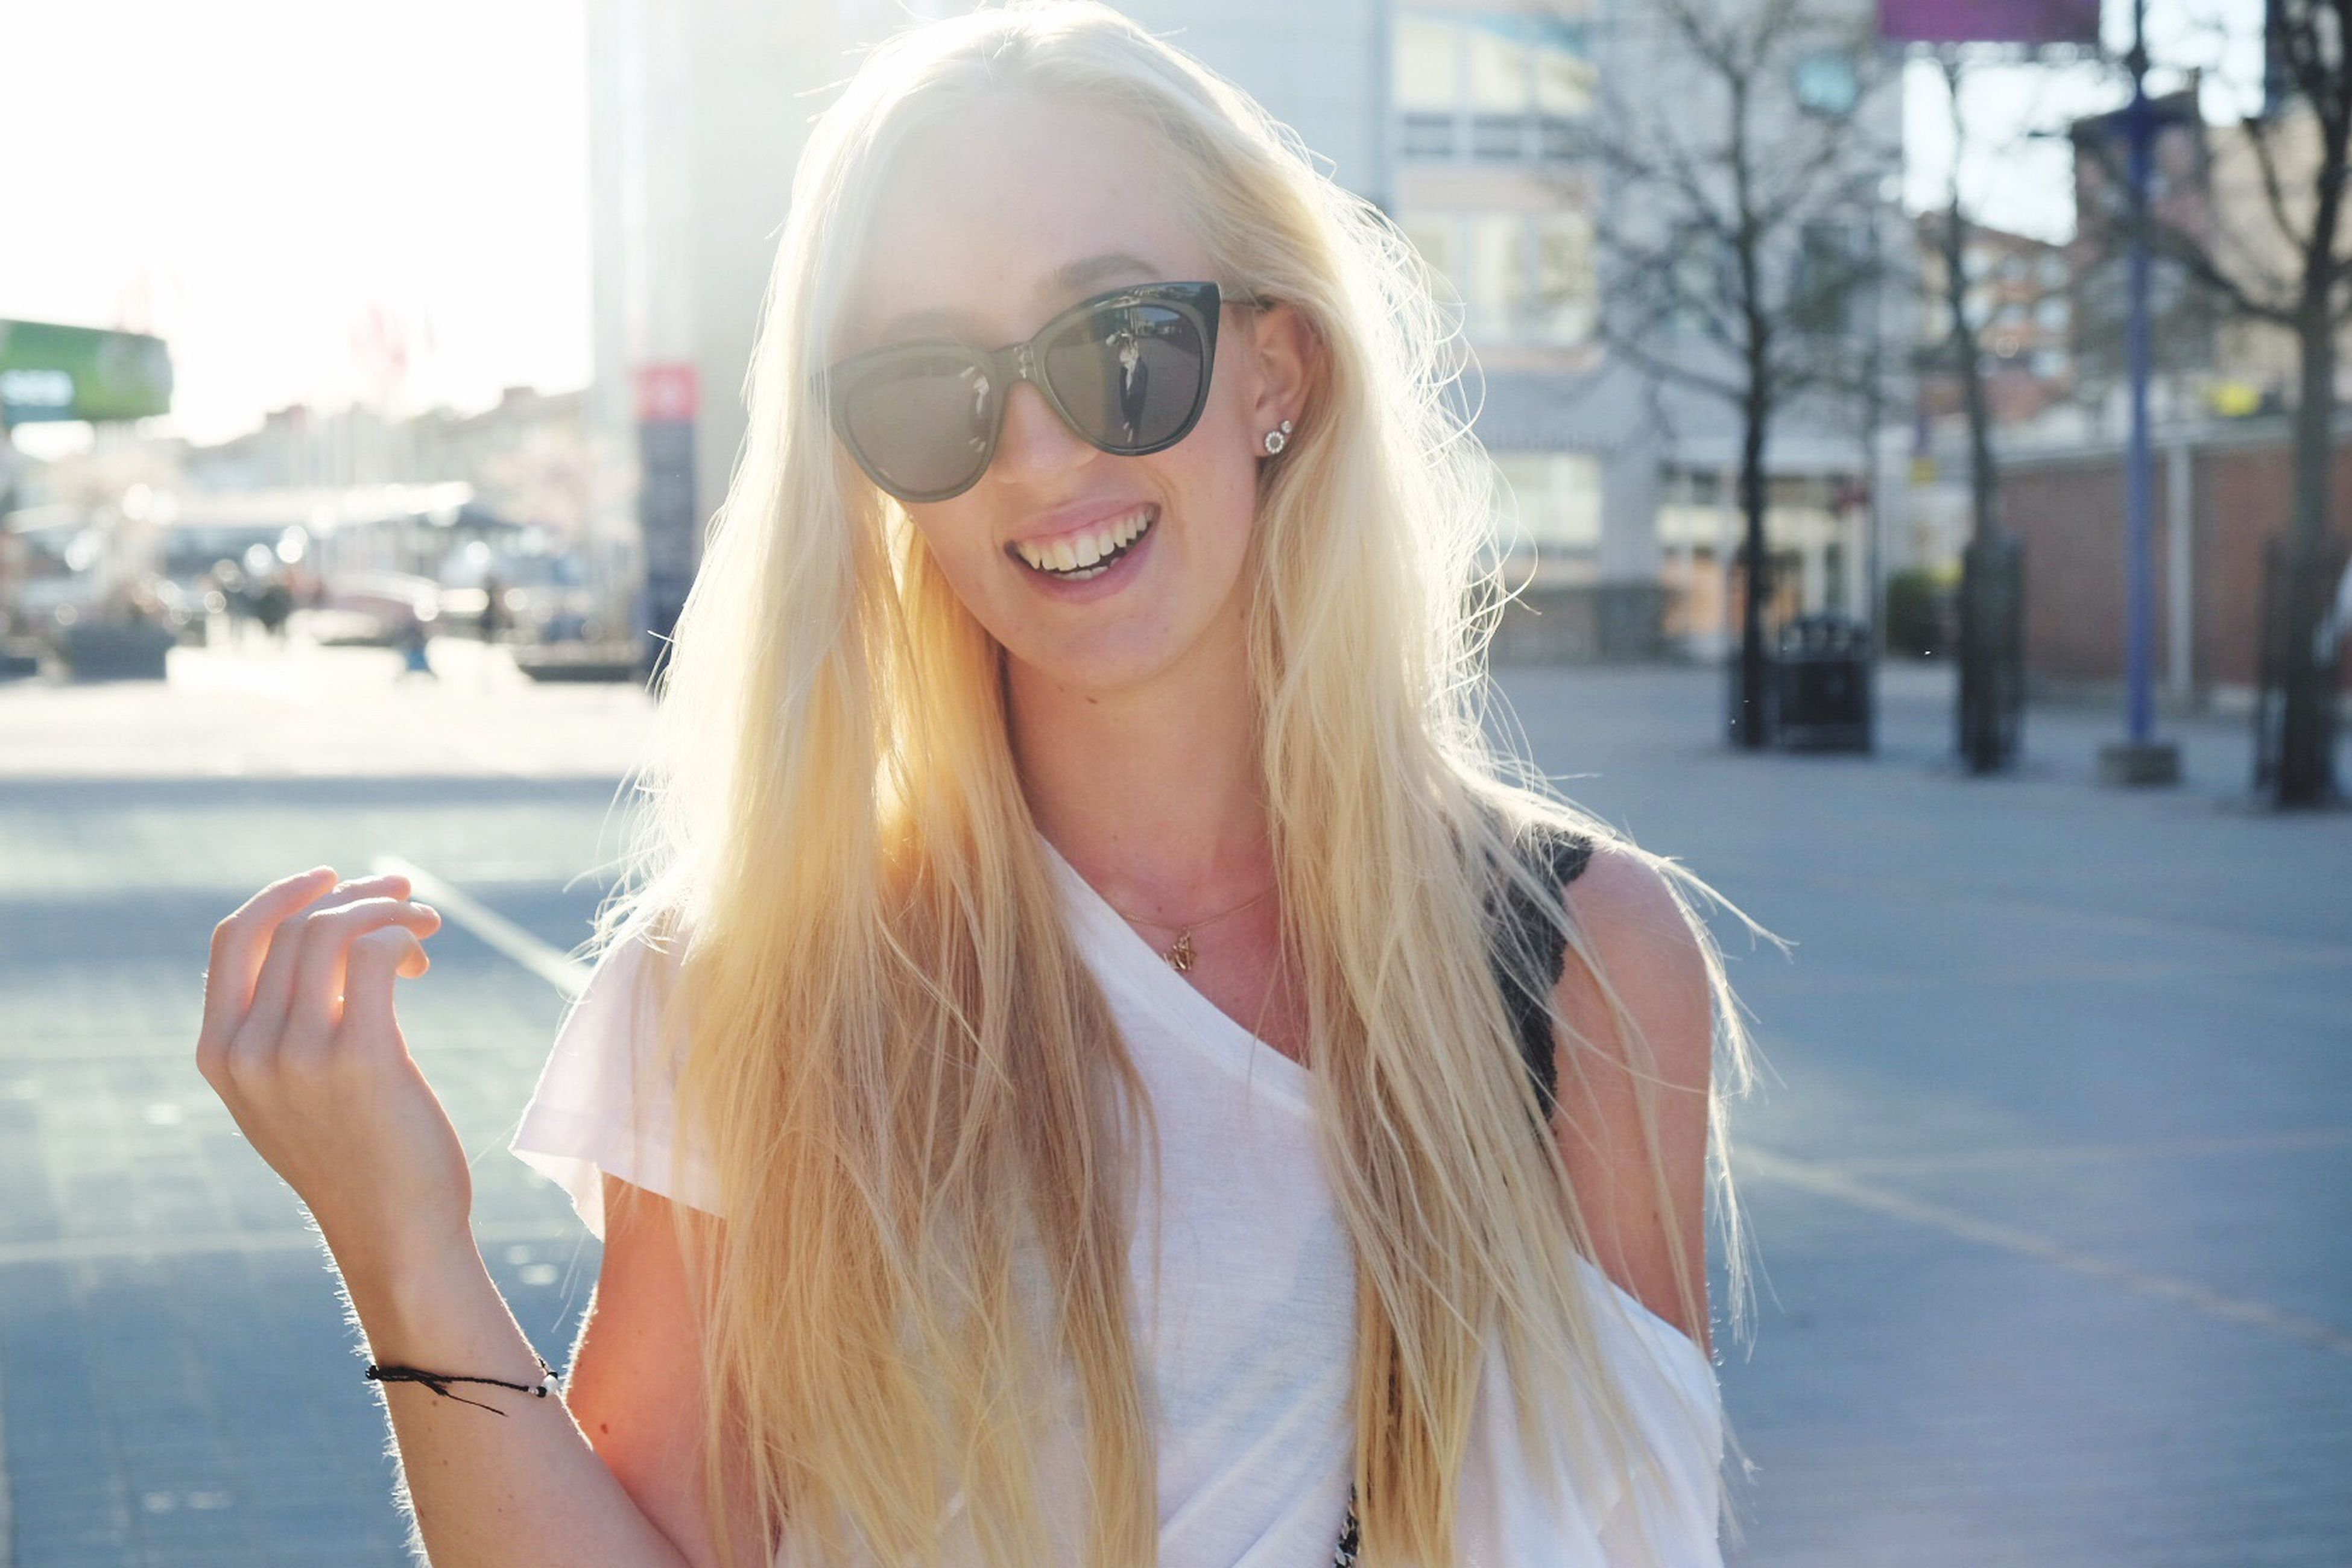 blond hair, smiling, one person, focus on foreground, young adult, beautiful woman, long hair, happiness, leisure activity, outdoors, young women, real people, front view, day, lifestyles, portrait, headshot, cheerful, women, eyeglasses, city, architecture, close-up, human lips, sky, adult, people